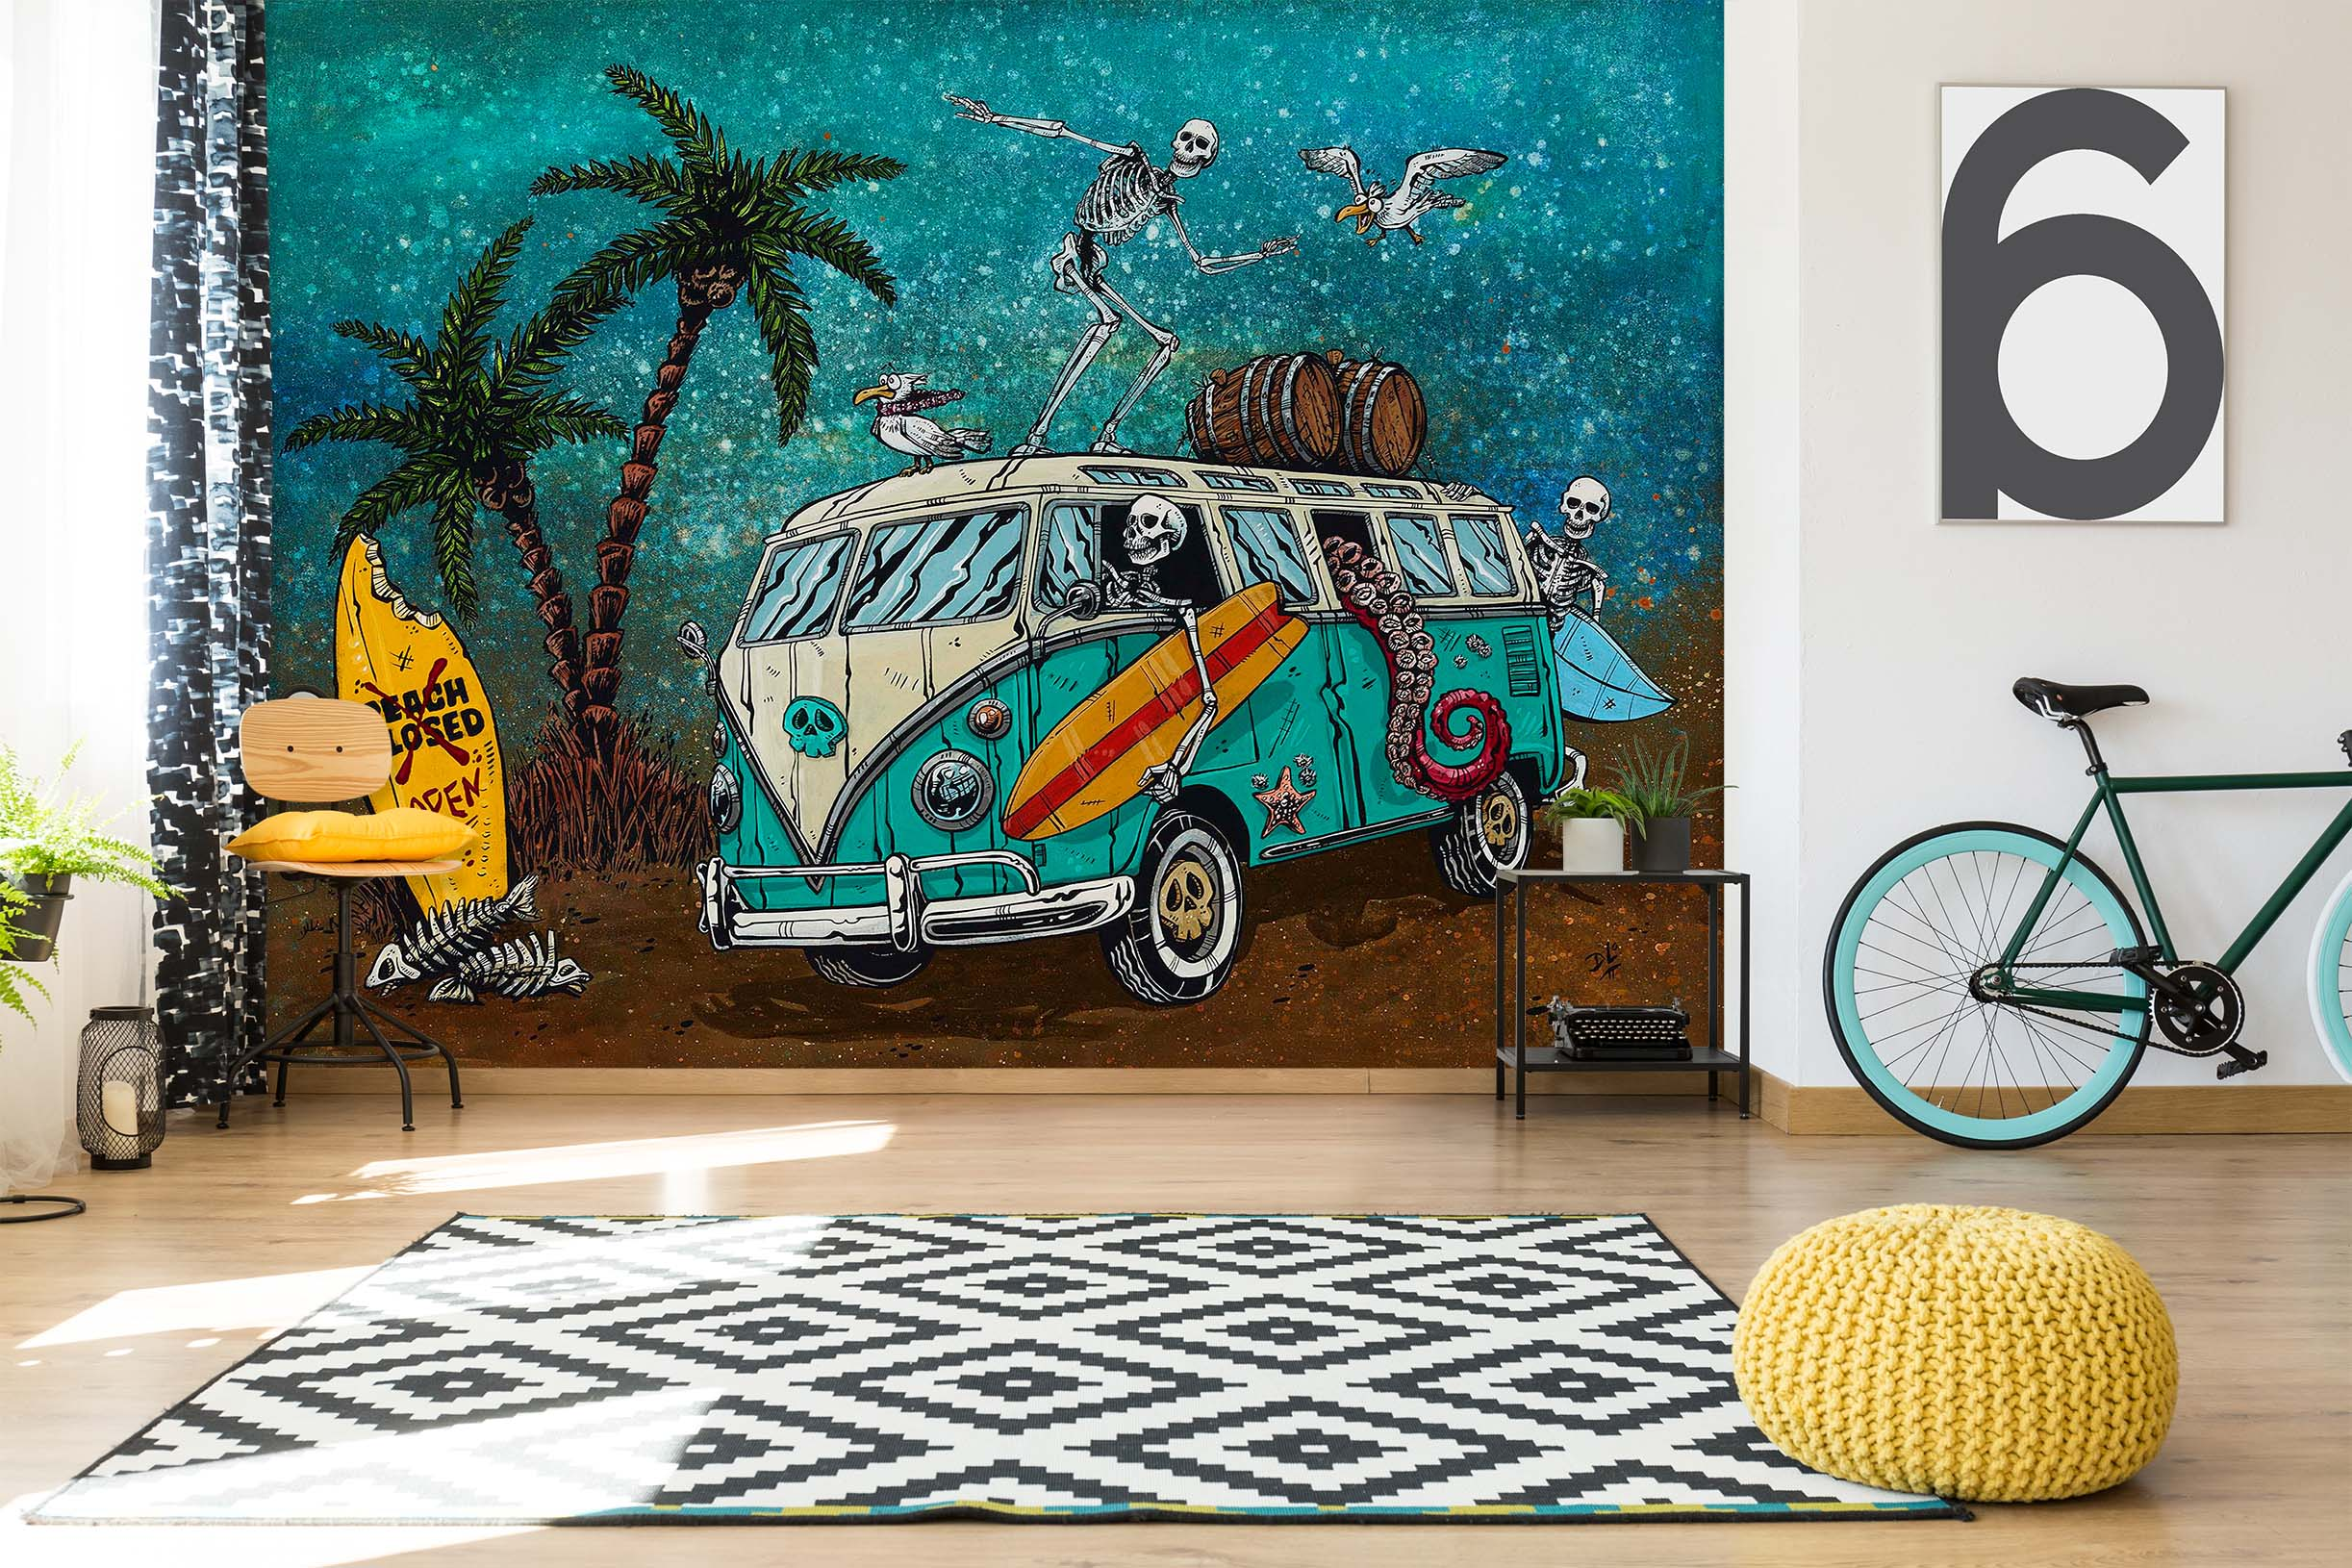 3D Coconut Tree Bus 1399 David Lozeau Wall Mural Wall Murals